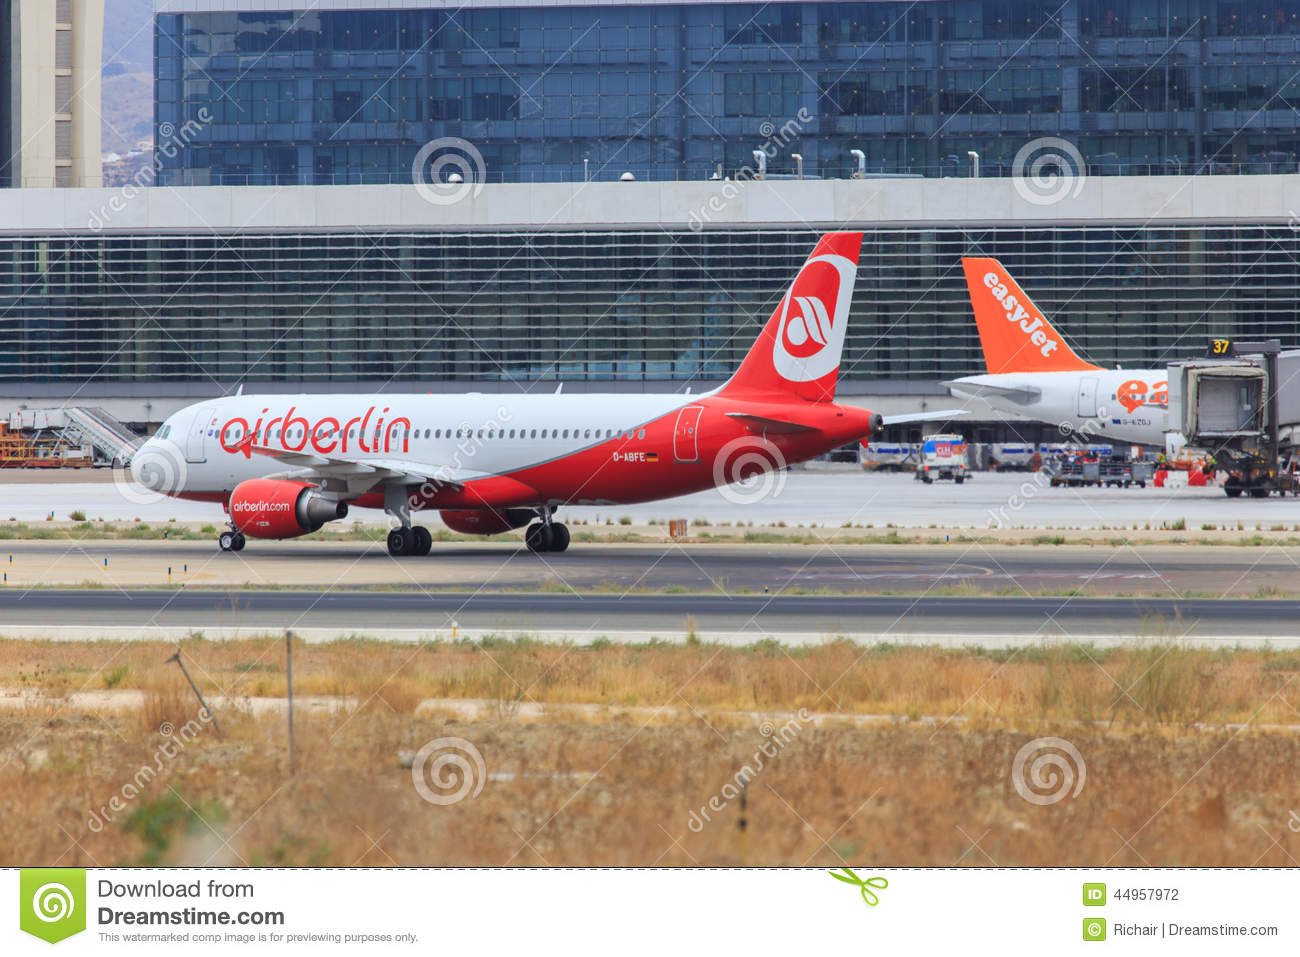 low cost airlines essay Topic : today's low-cost airlines are able to offer fast and cheap travel however,  some people believe this is at a cost to the planet suggest.